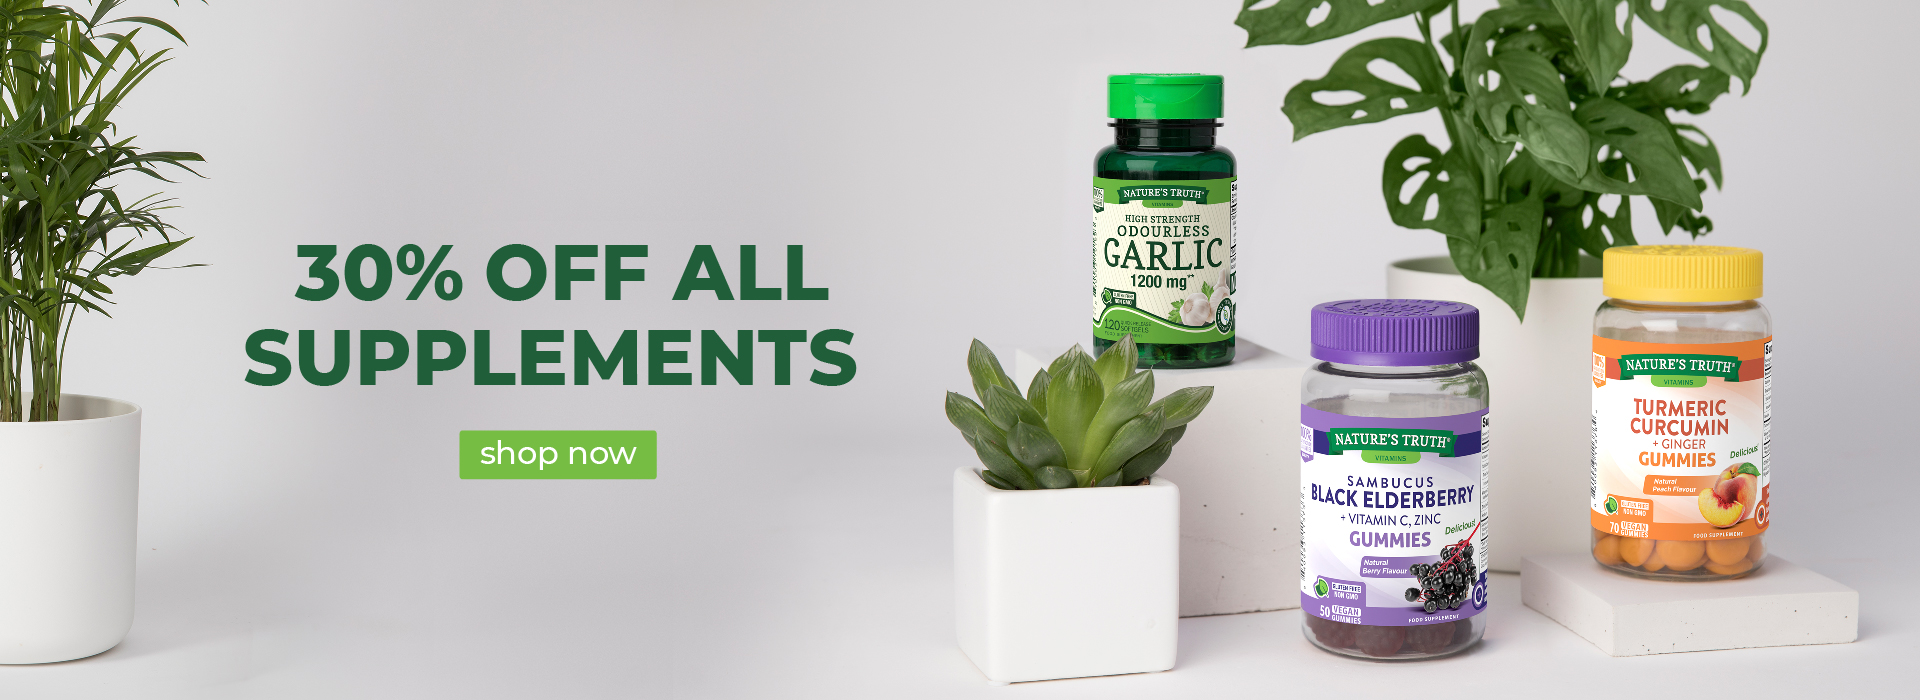 30% off all supplements